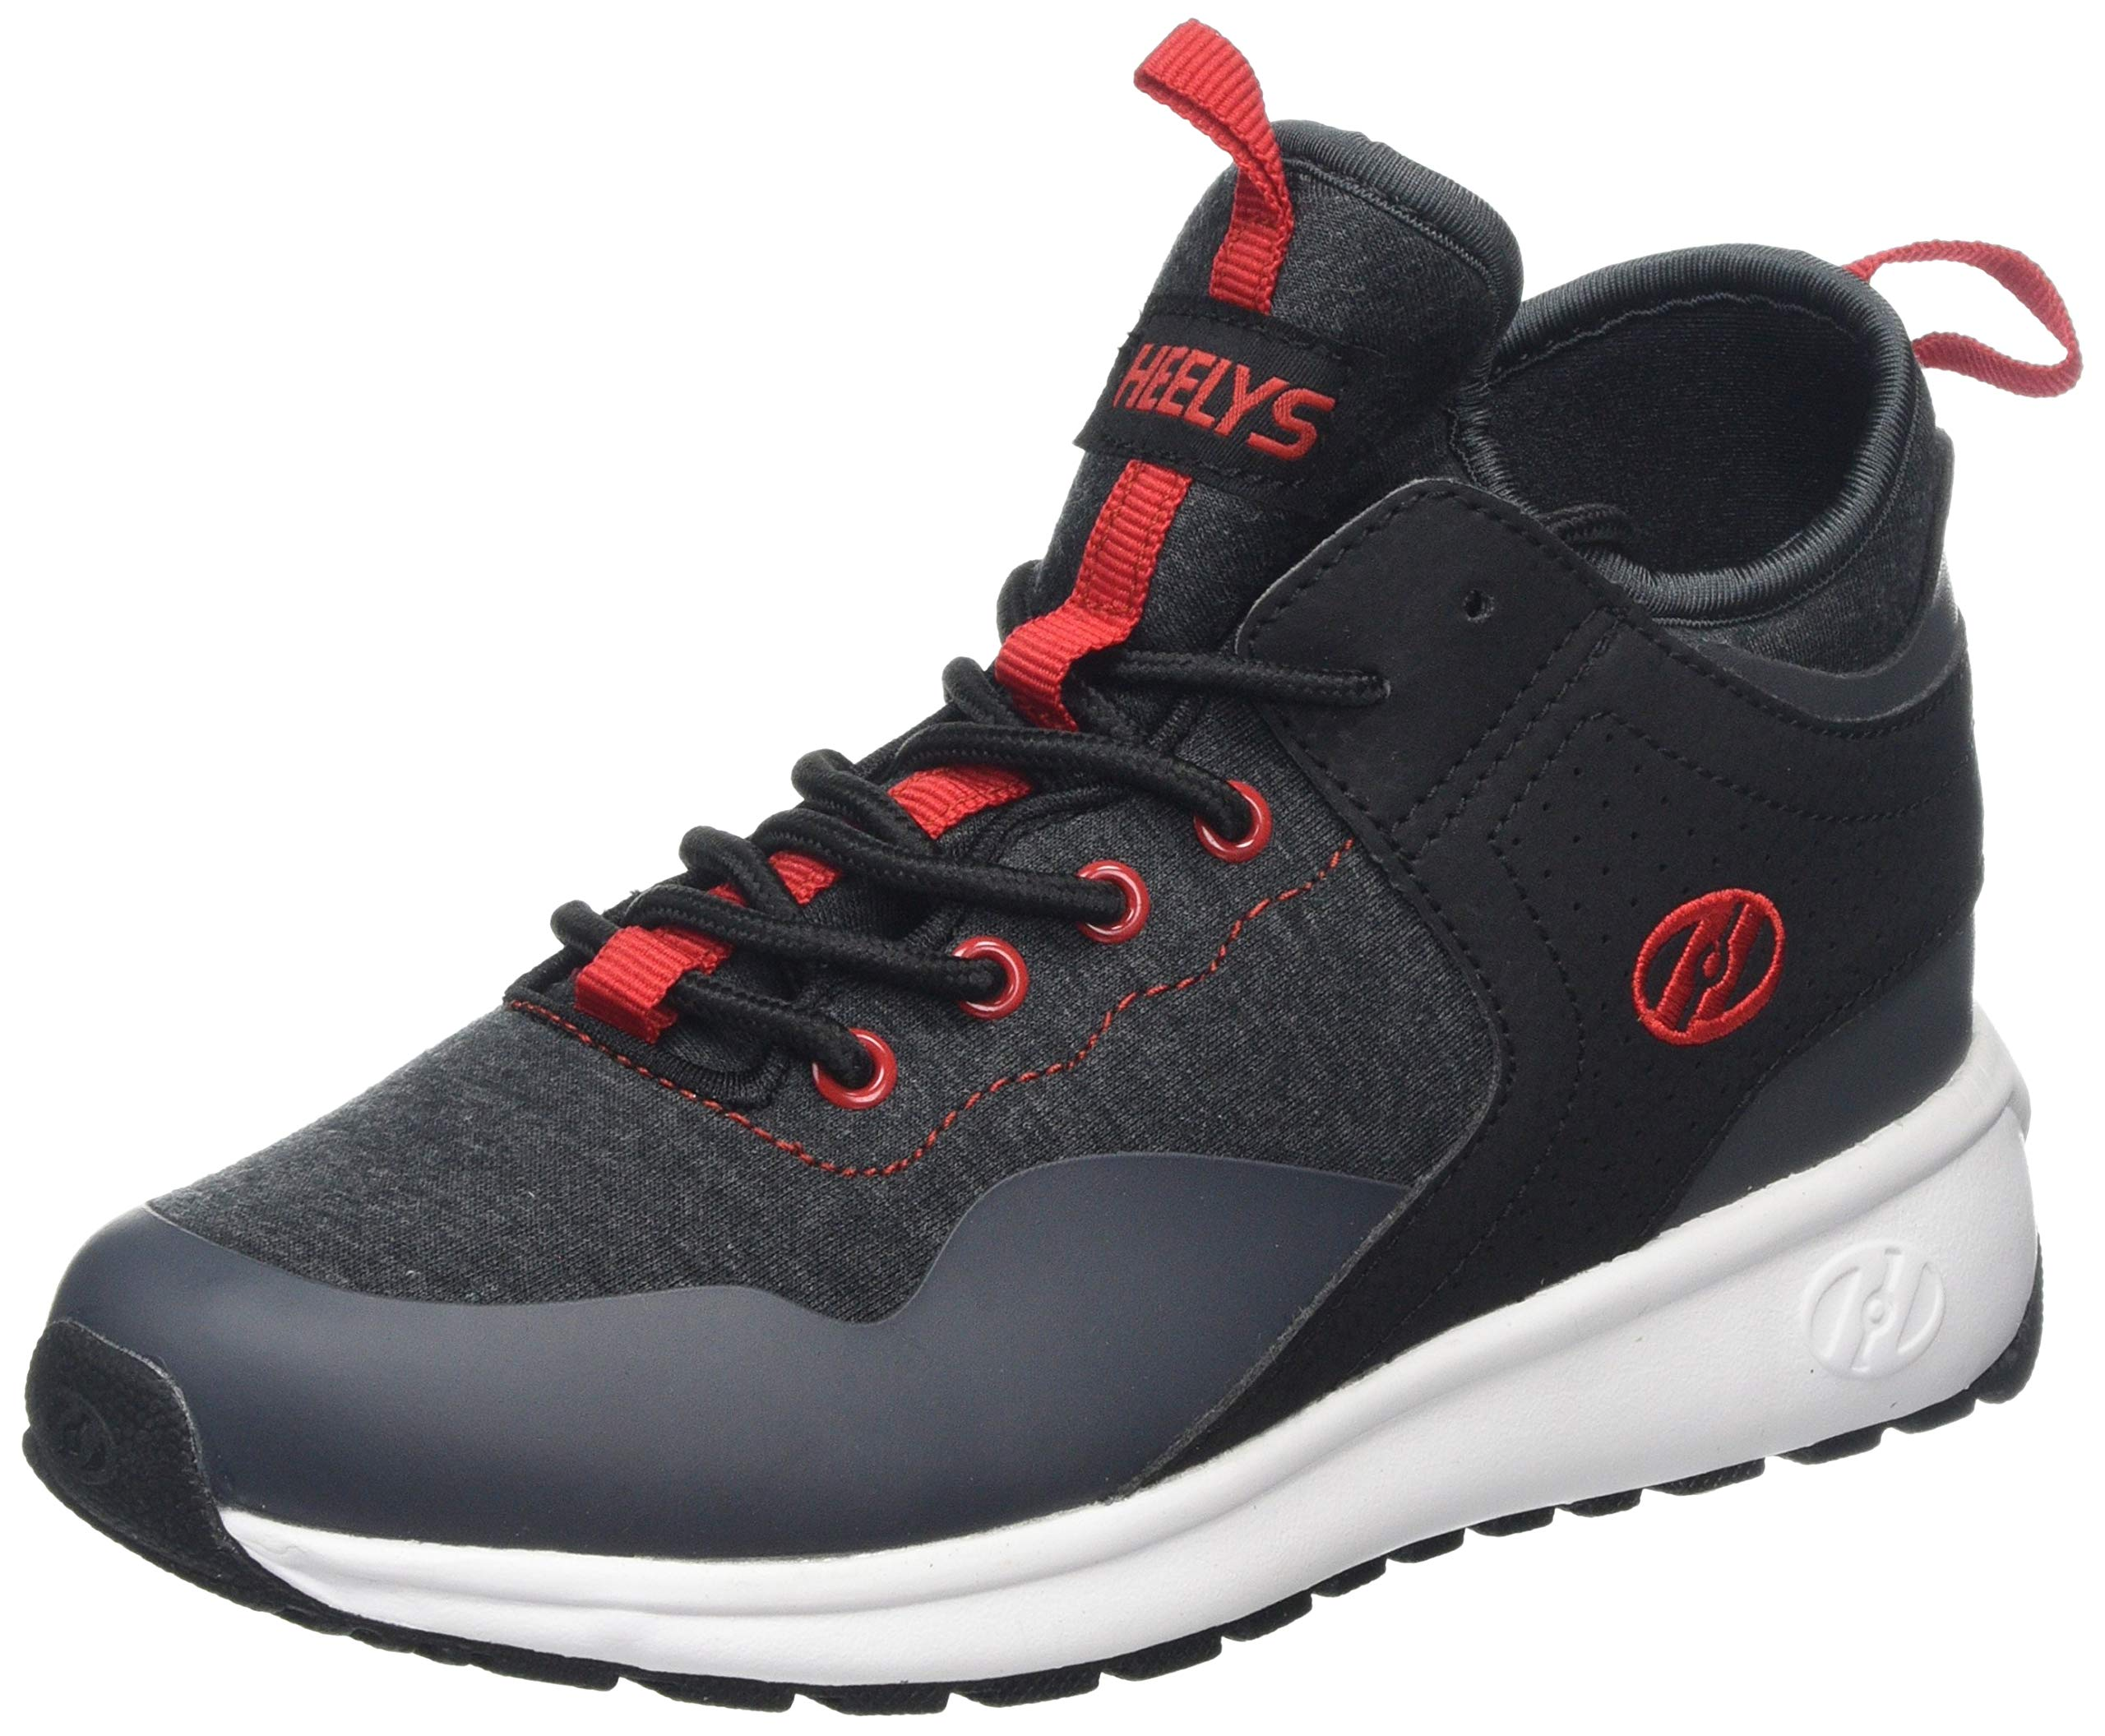 Heelys Boys' Piper Tennis Shoe Black Heathered/Red 3 M US Big Kid by Heelys (Image #1)